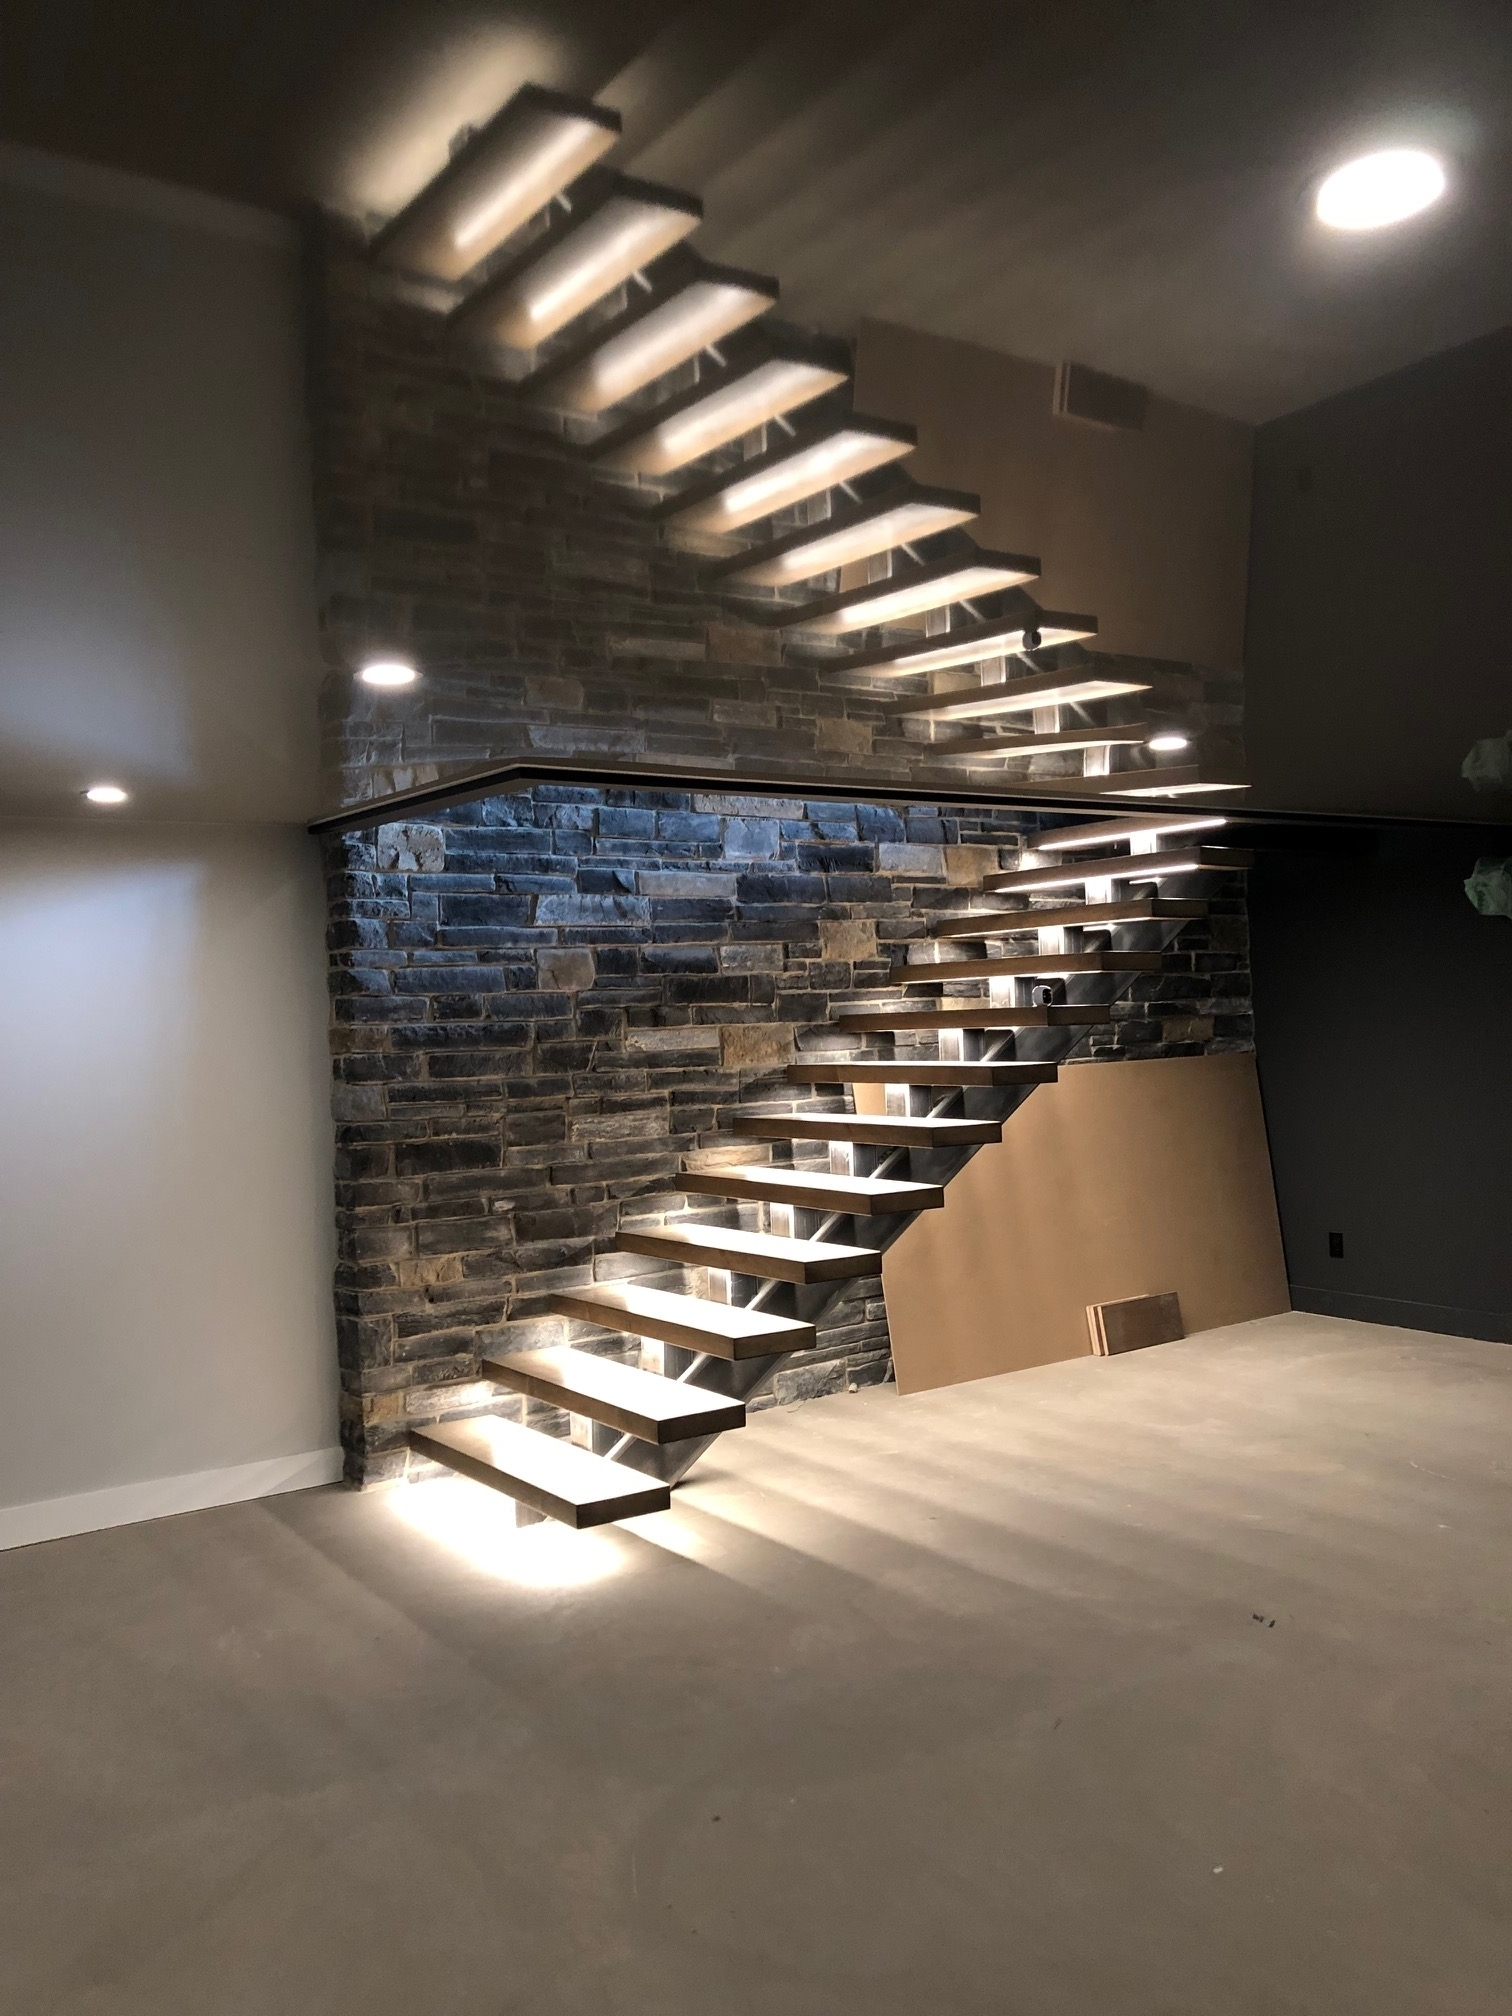 E-lite inc à Montréal: Sale and installation of custom LED lighting integrated with home automation. We have the skills and experience to lead unique design projects.